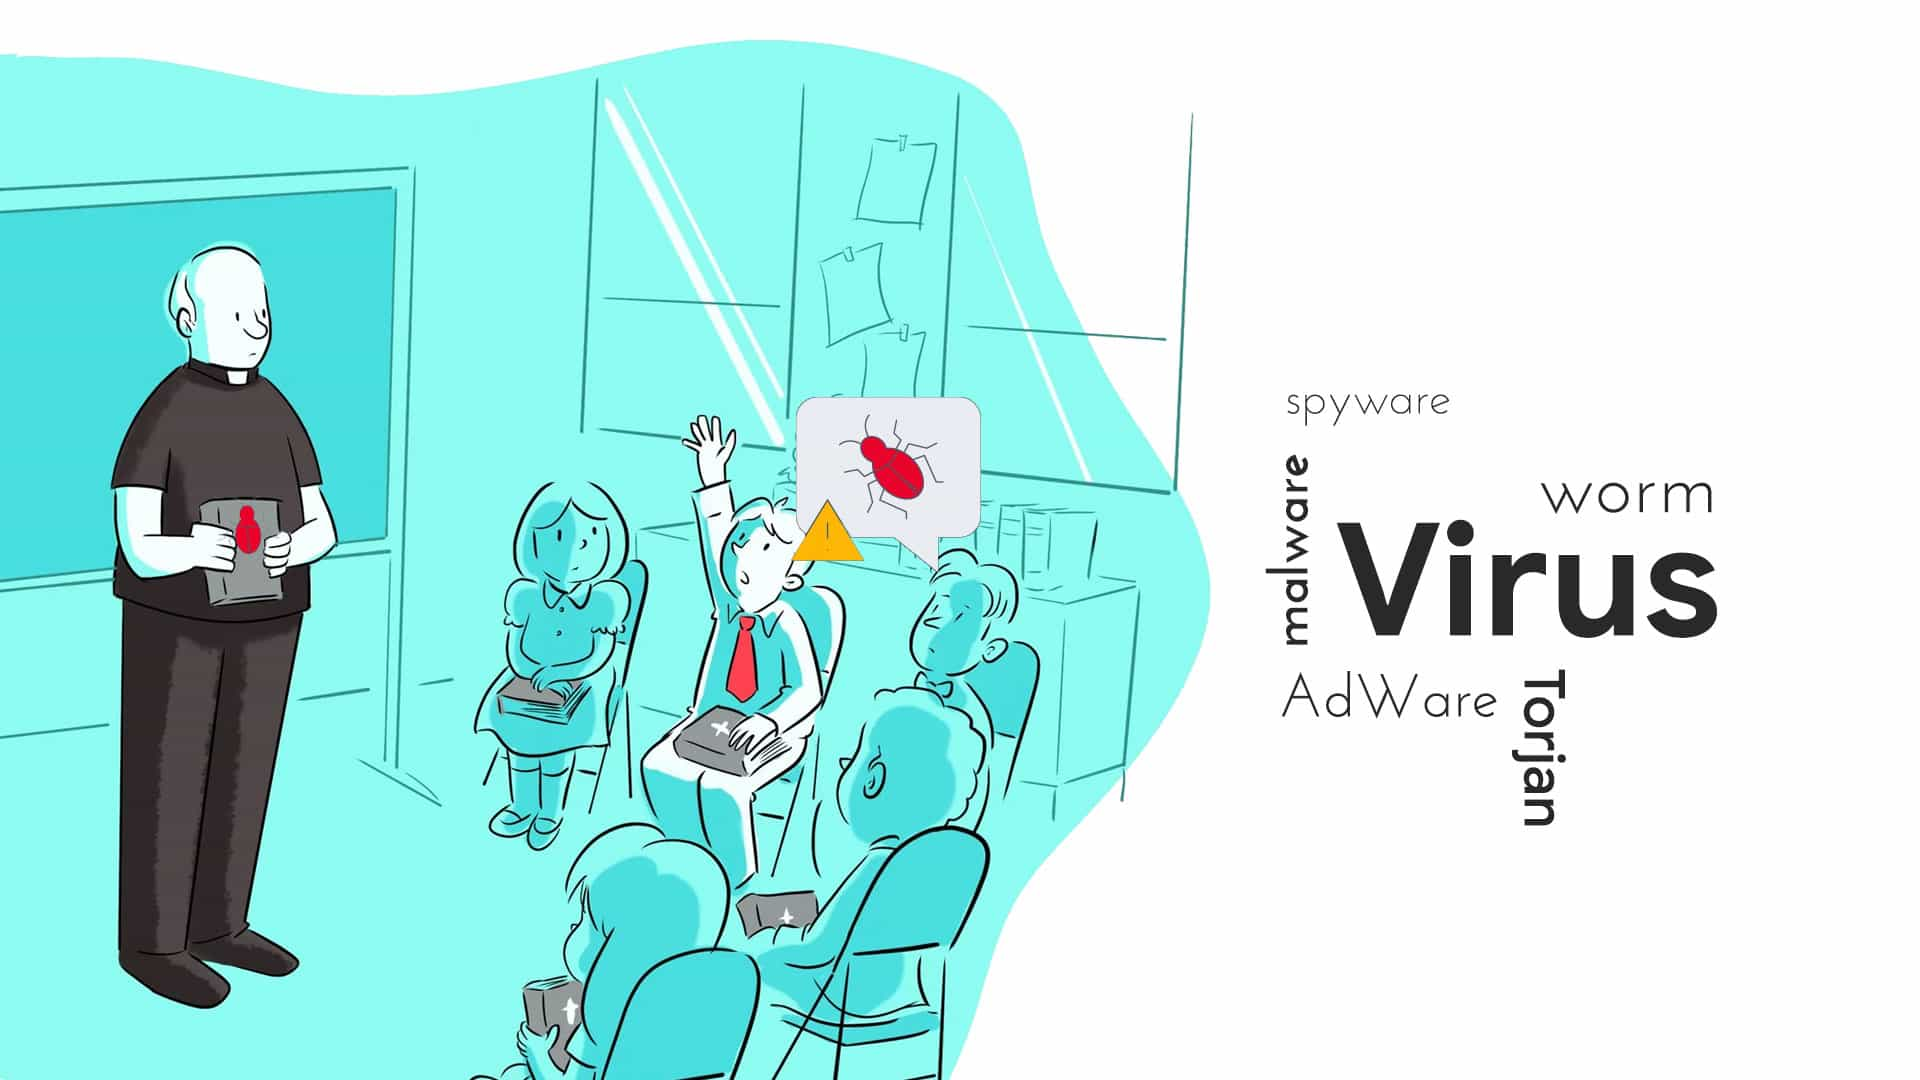 Difference between virus worm malware spyware adware